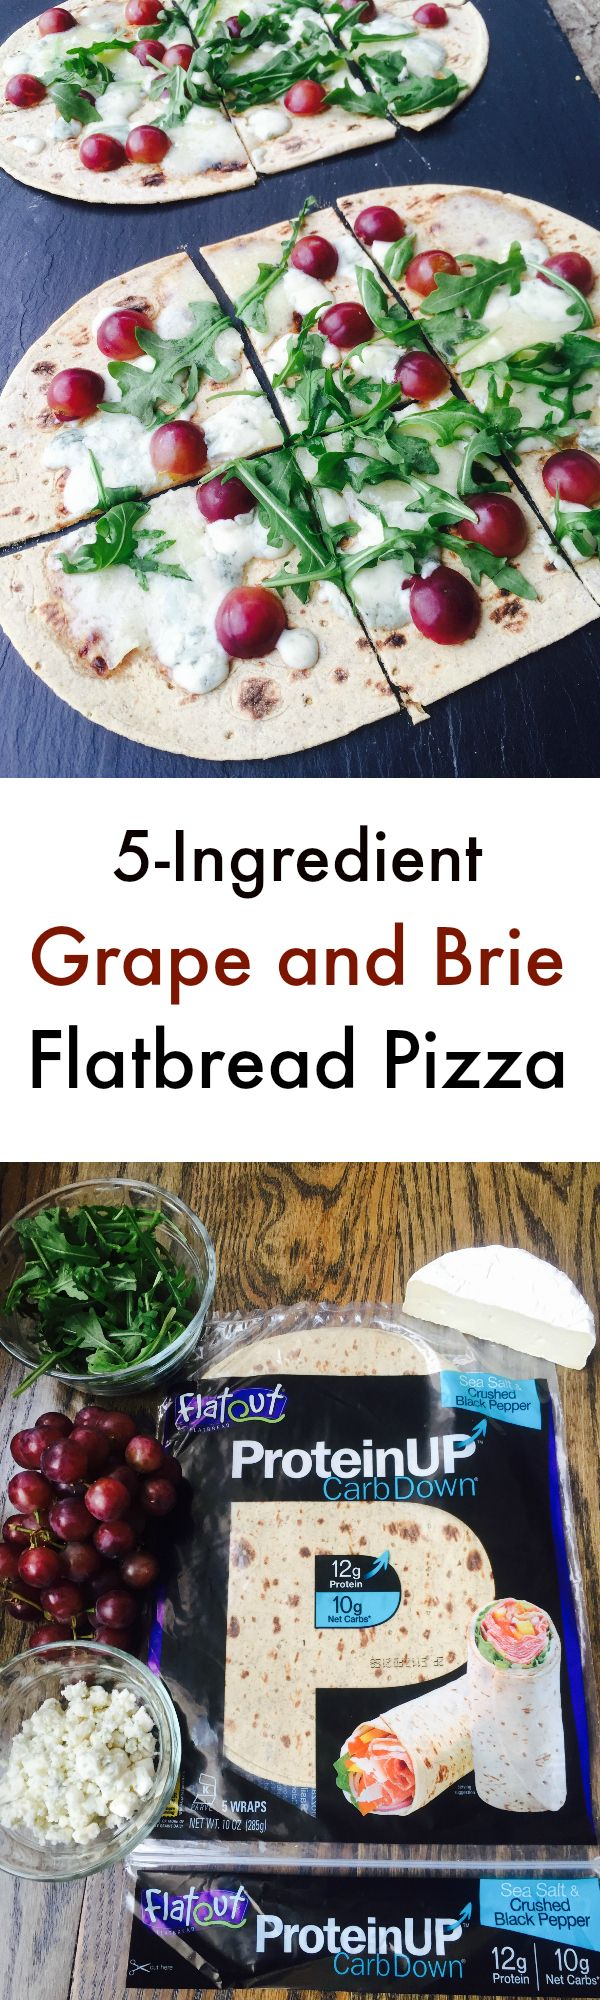 Grape and Brie Flatbread Pizza using High Protein flatbread! (healthy high protein meals dinners)